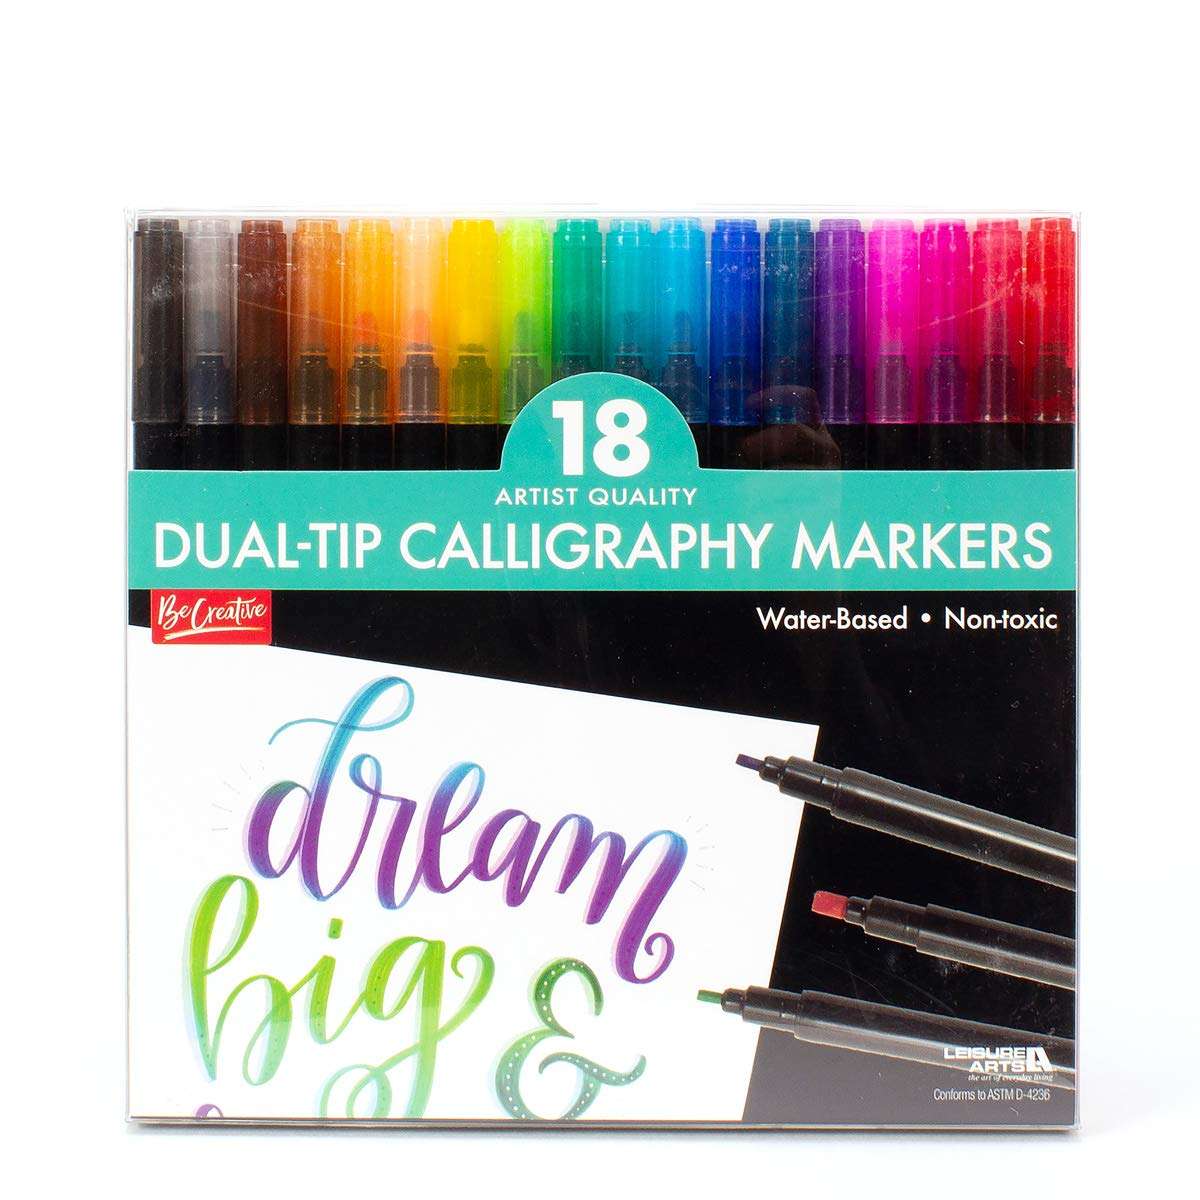 Leisure Arts, 18 Artist Quality Dual-Tip Calligraphy Markers, Hand Lettering Quality, Thick and Thin Lines, Water Based, Non-Toxic by LEISURE ARTS